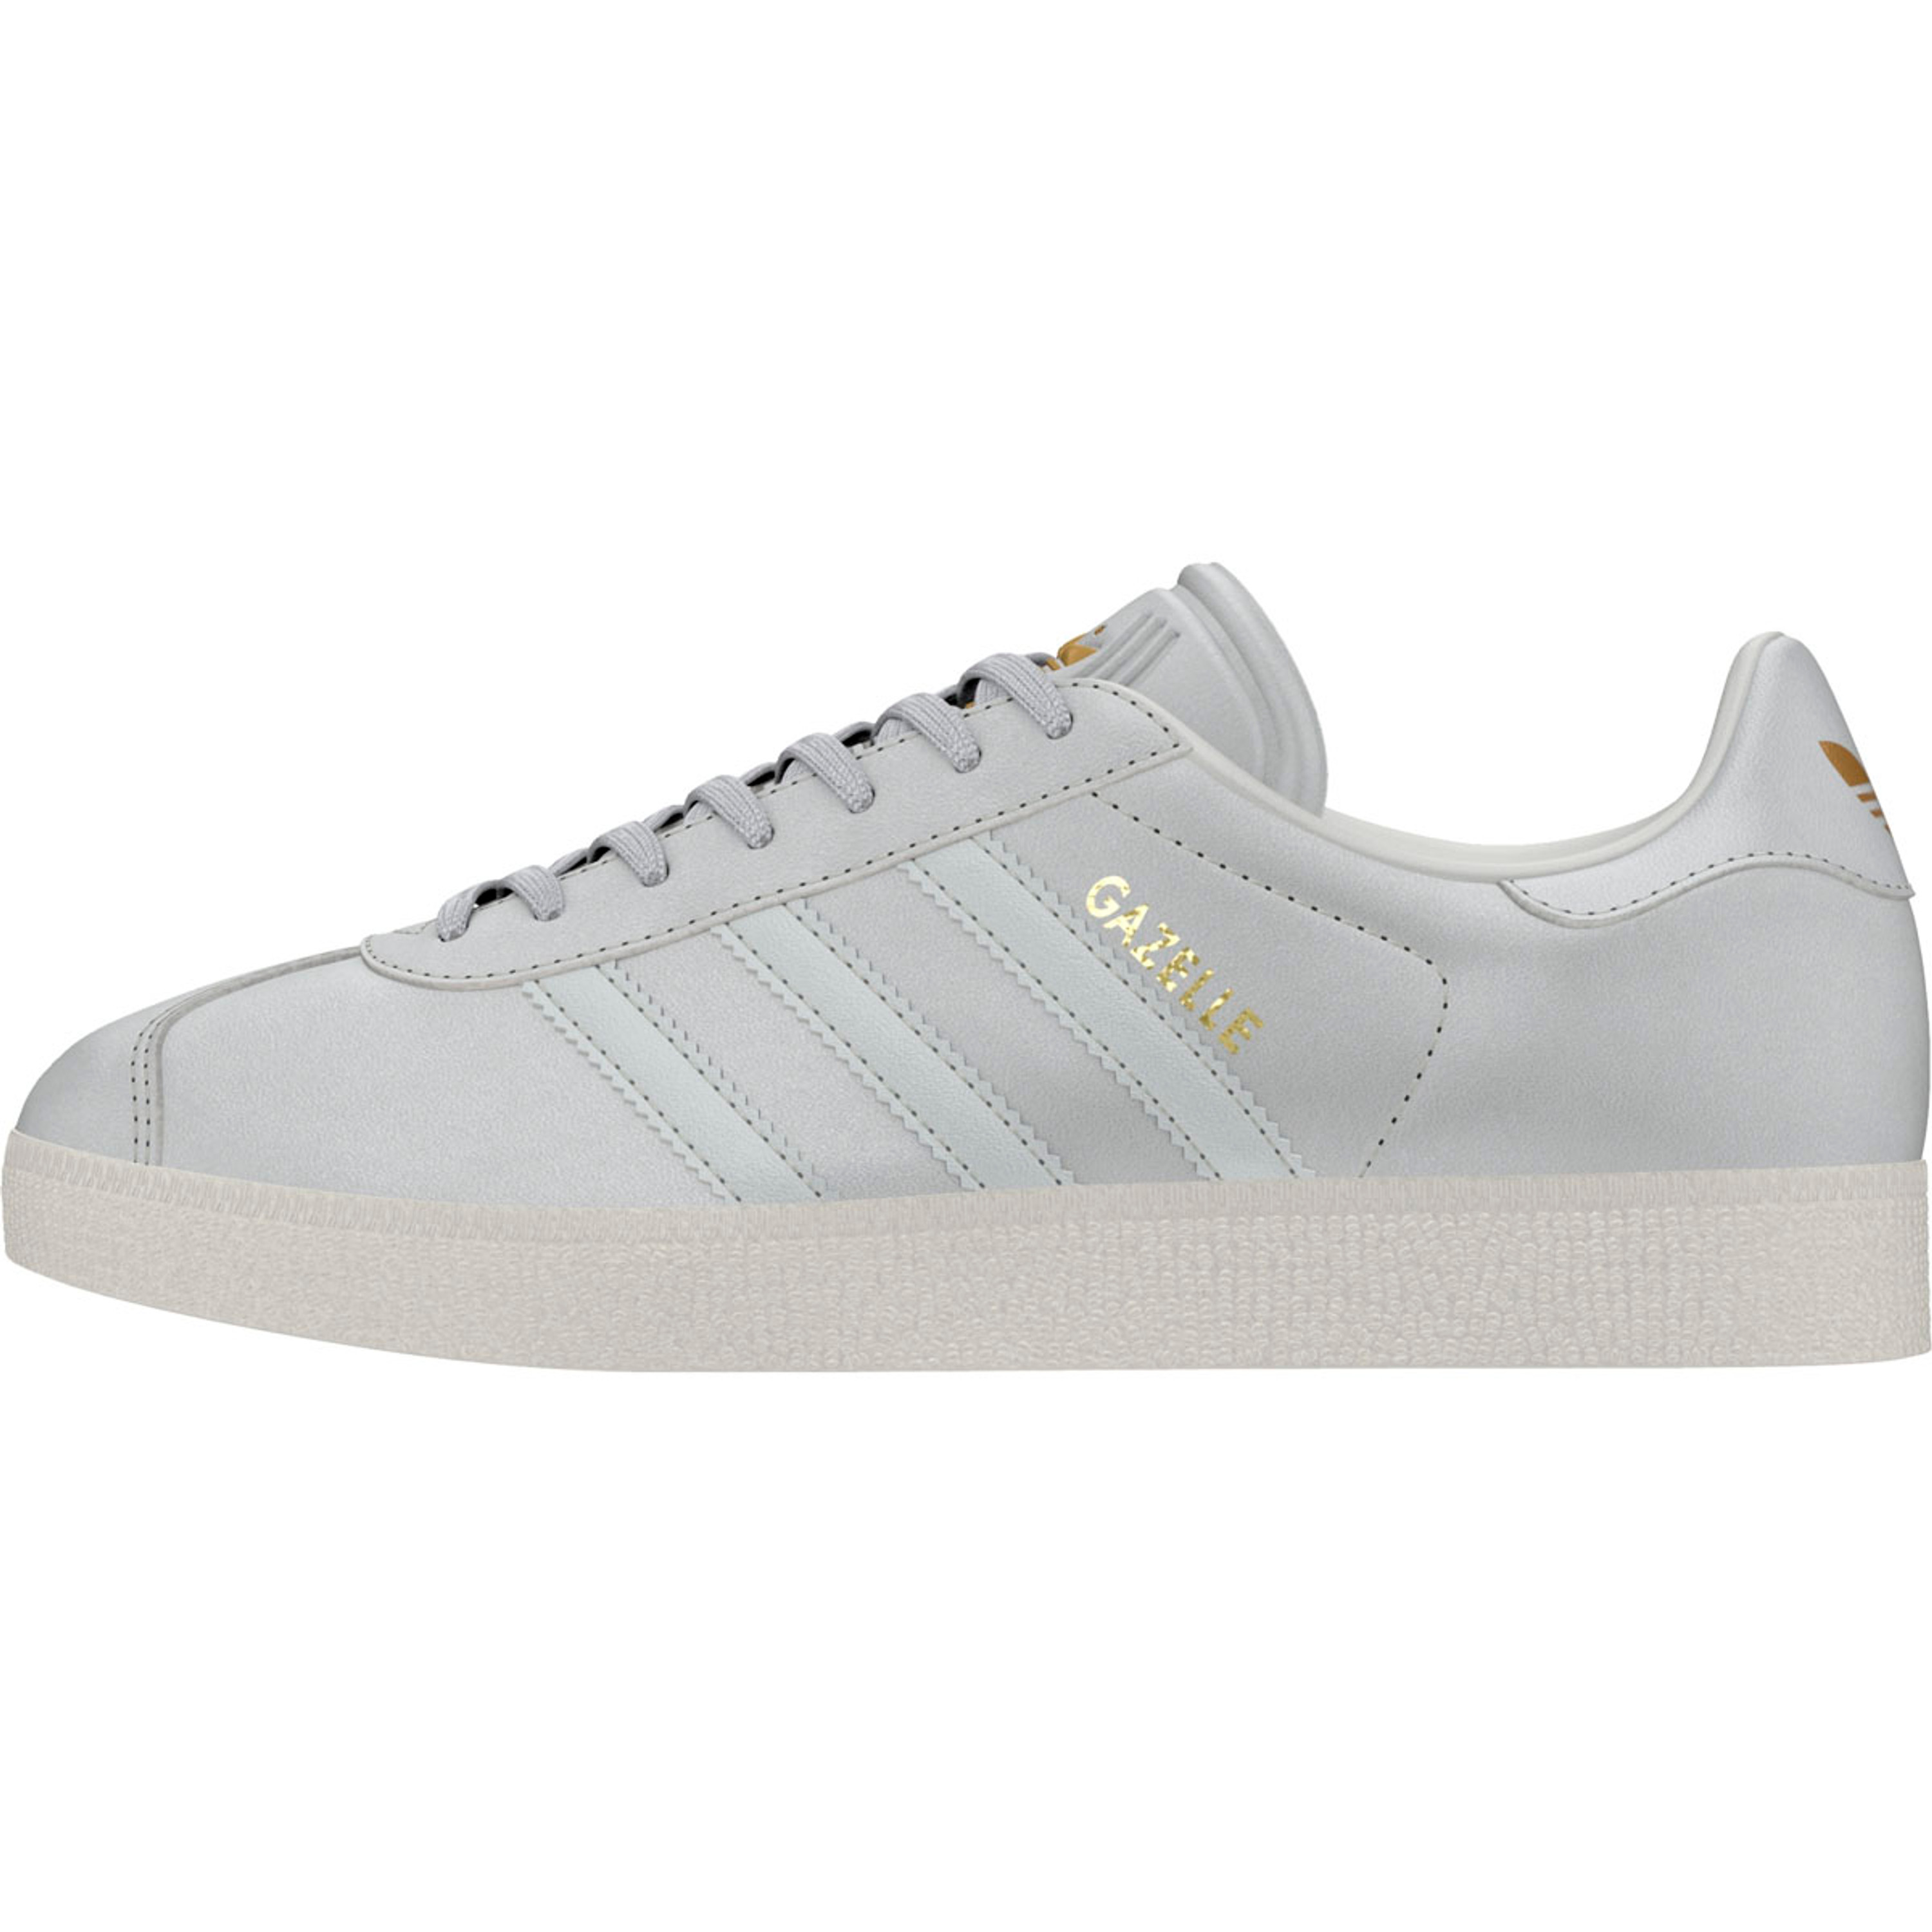 big sale 0d118 c3aca Adidas Gazelle Damen Retro-Vintage Sneakers in klassischem weiss  CRYWHT CRYWHT GOLDMT